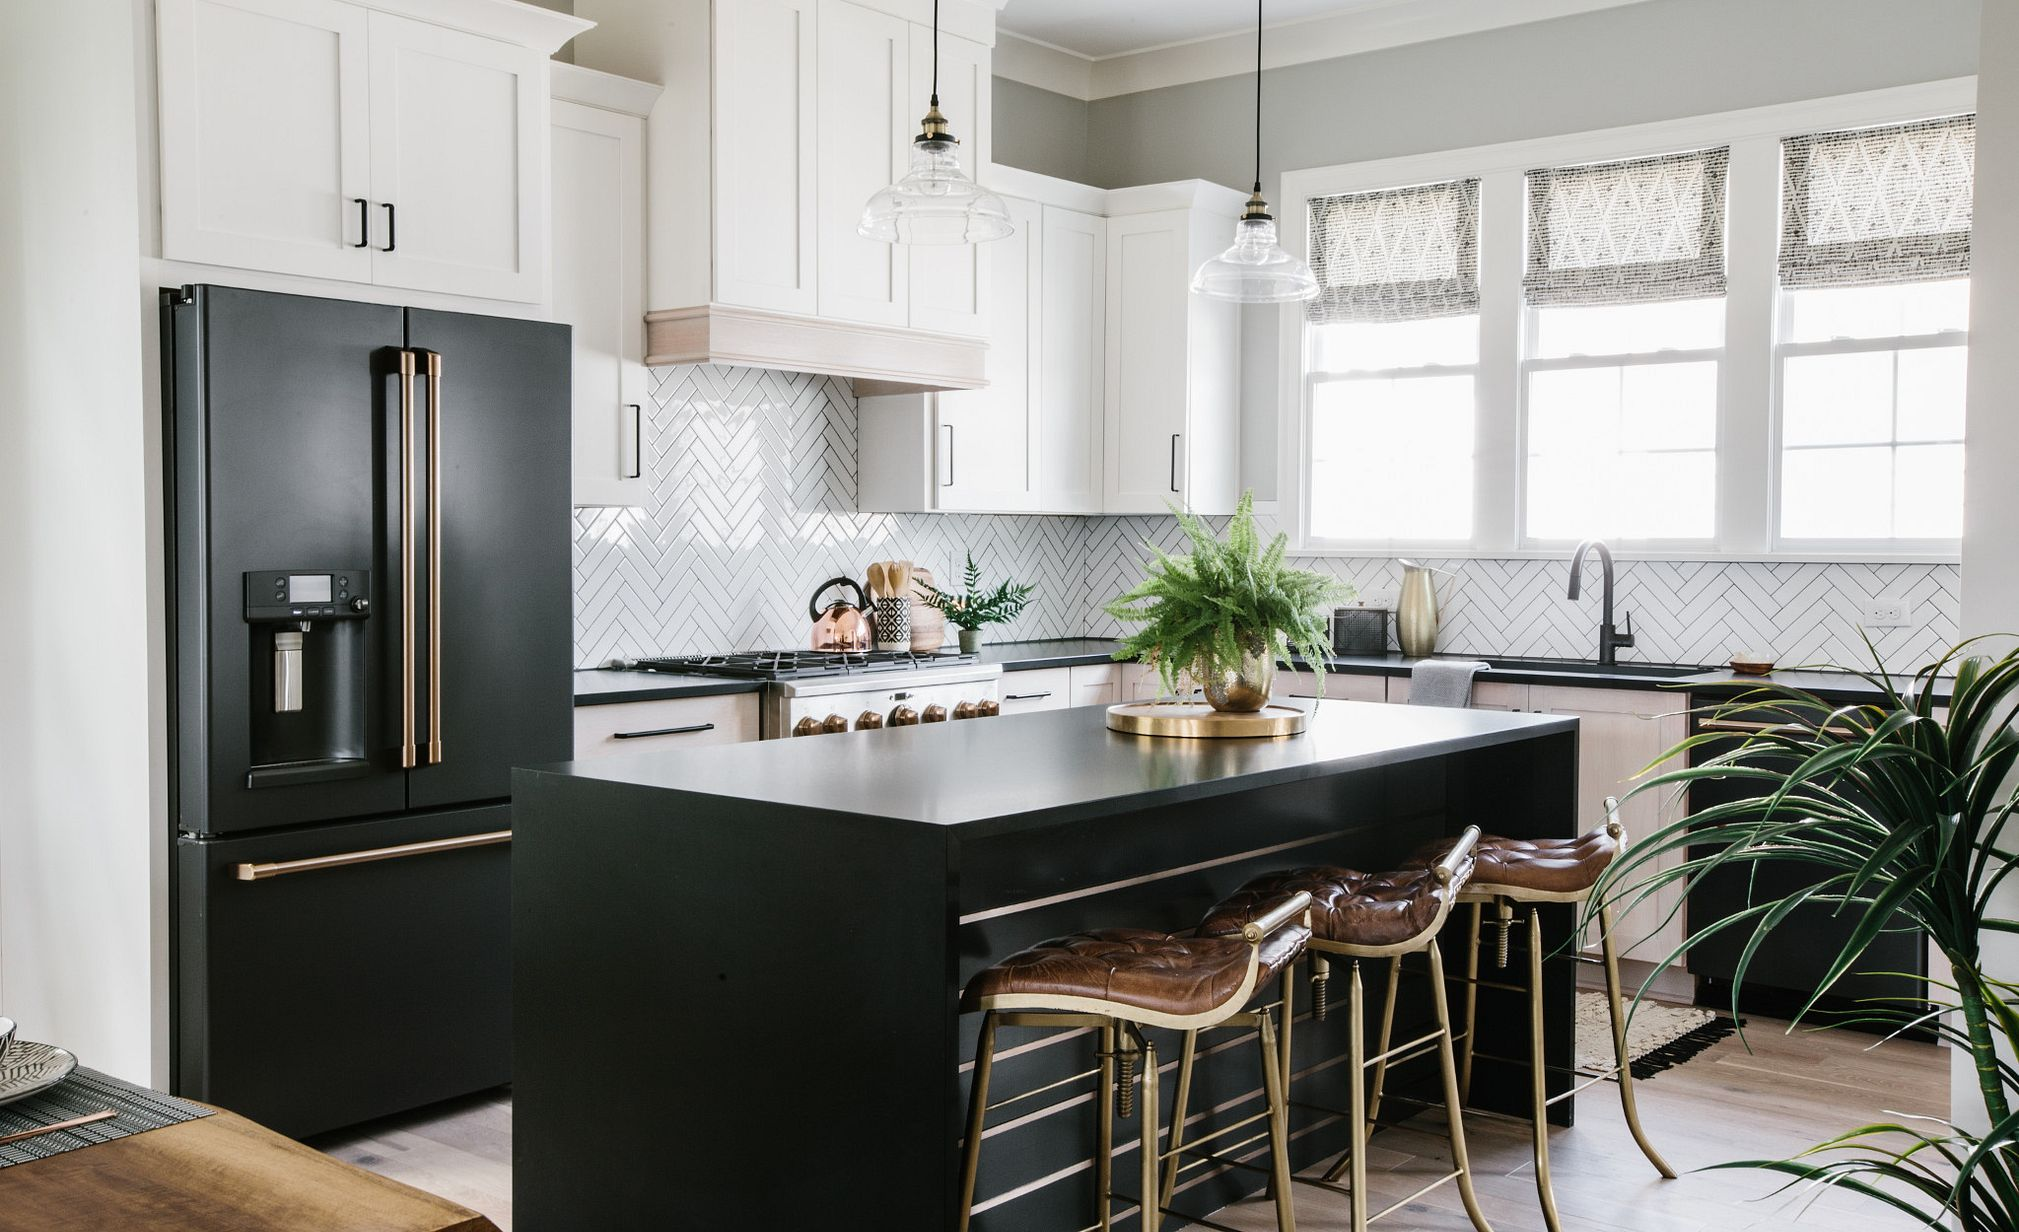 This spacious open kitchen offers optimal traffic flow and properly scaled details, including a Cambria Blackpool Matte waterfall-edge island.